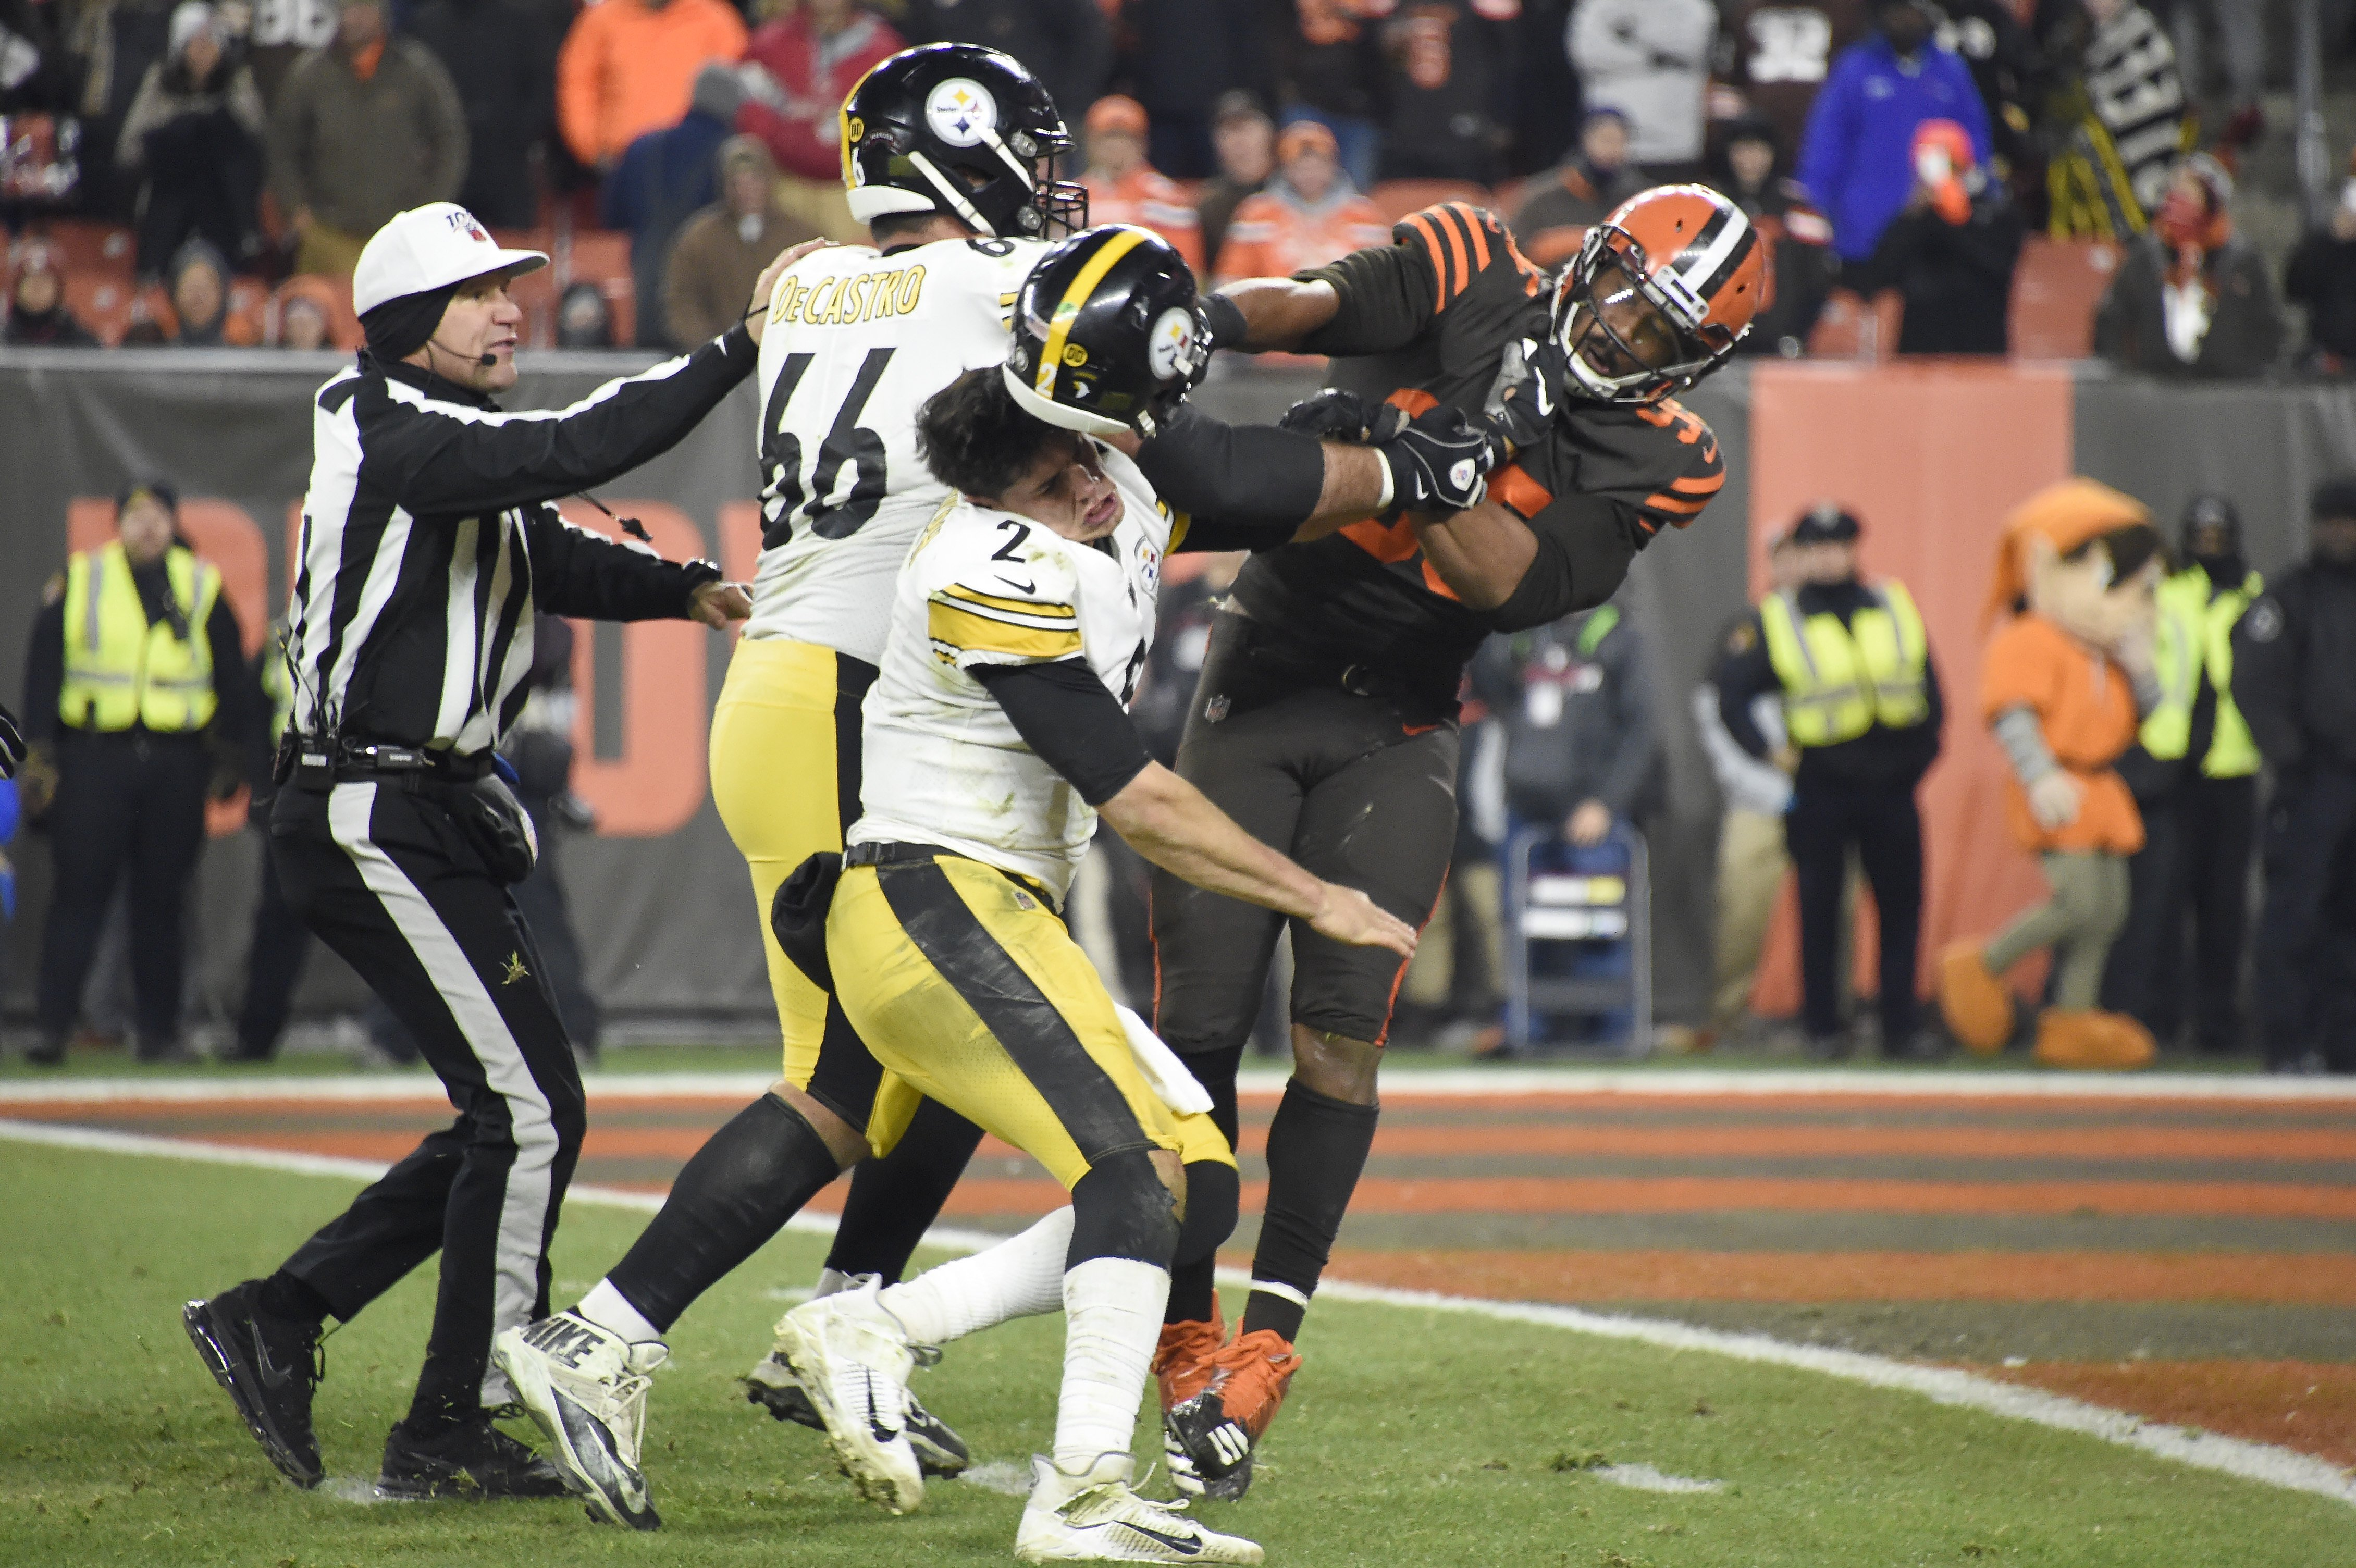 NFL player Myles Garrett appeals indefinite suspension imposed after helmet-swinging brawl, source says